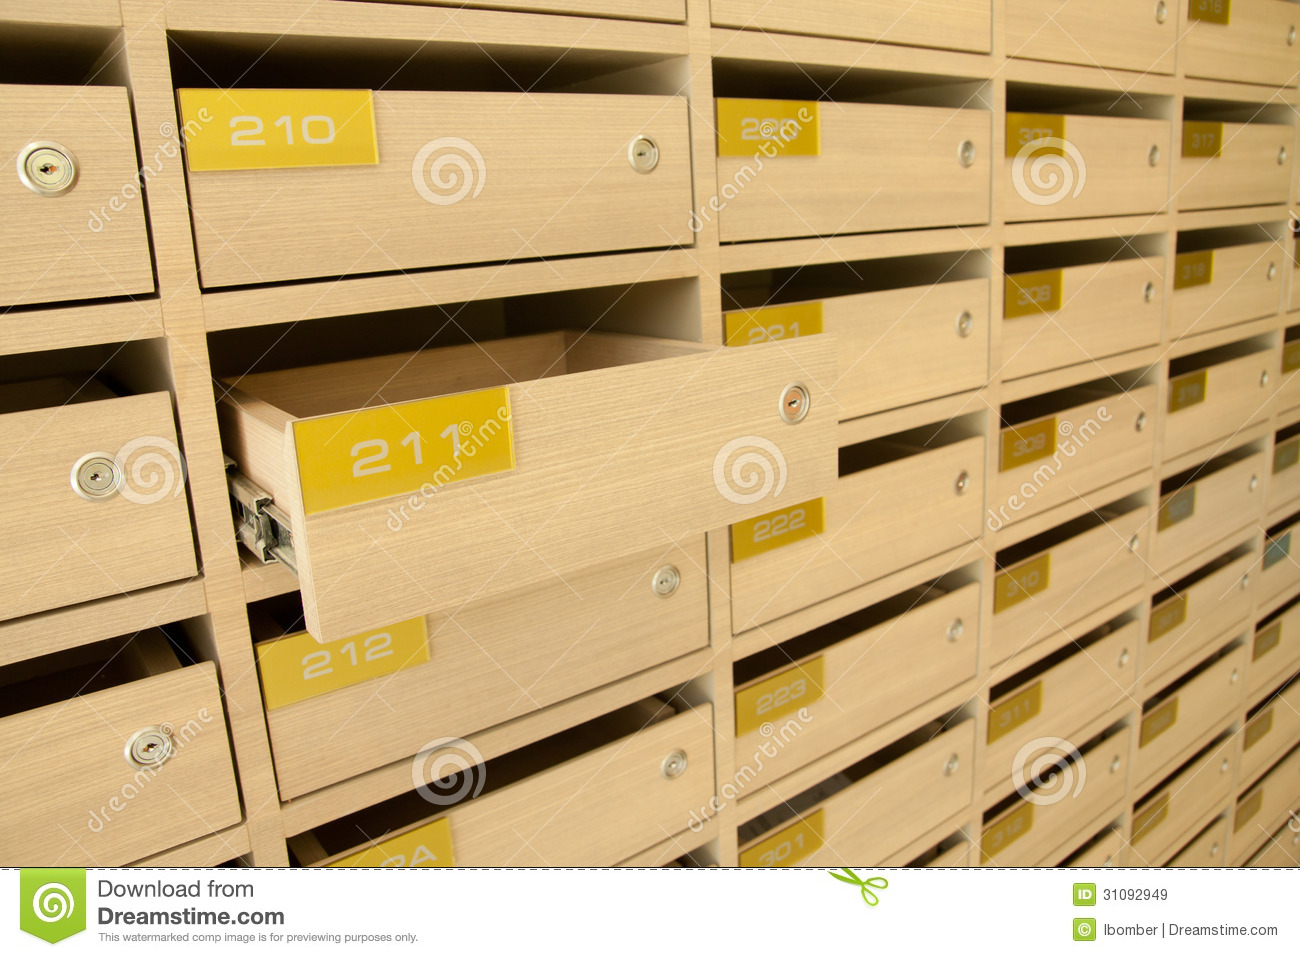 Awesome Apartment Mailboxes Interiordesignshome Com Interior